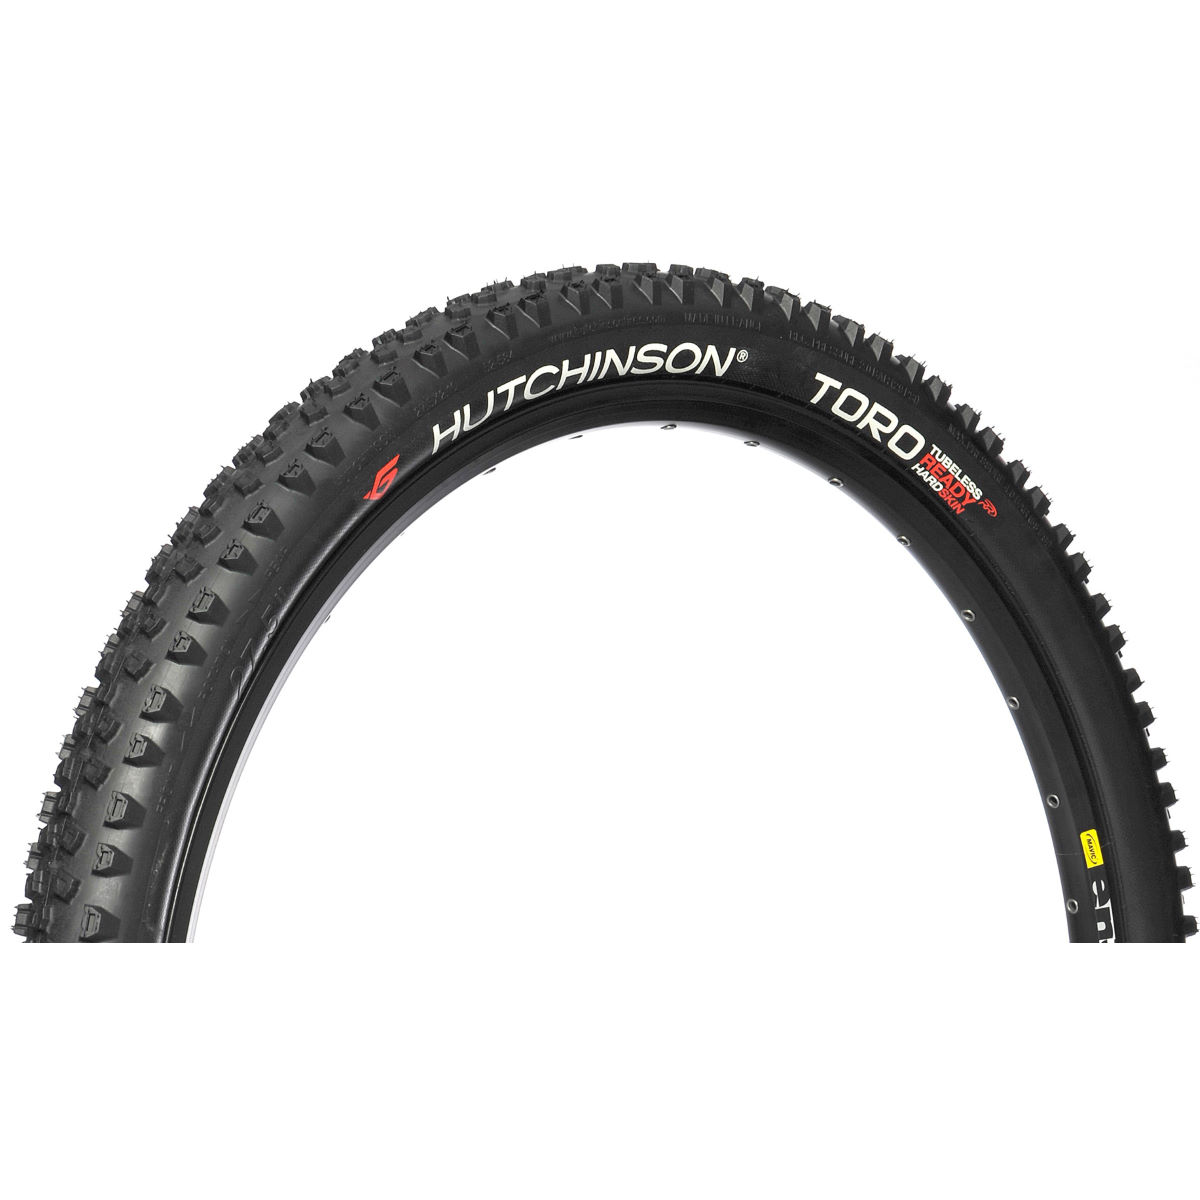 Pneu de cyclo-cross Hutchinson Toro (tubeless, souple) - Noir Pneus